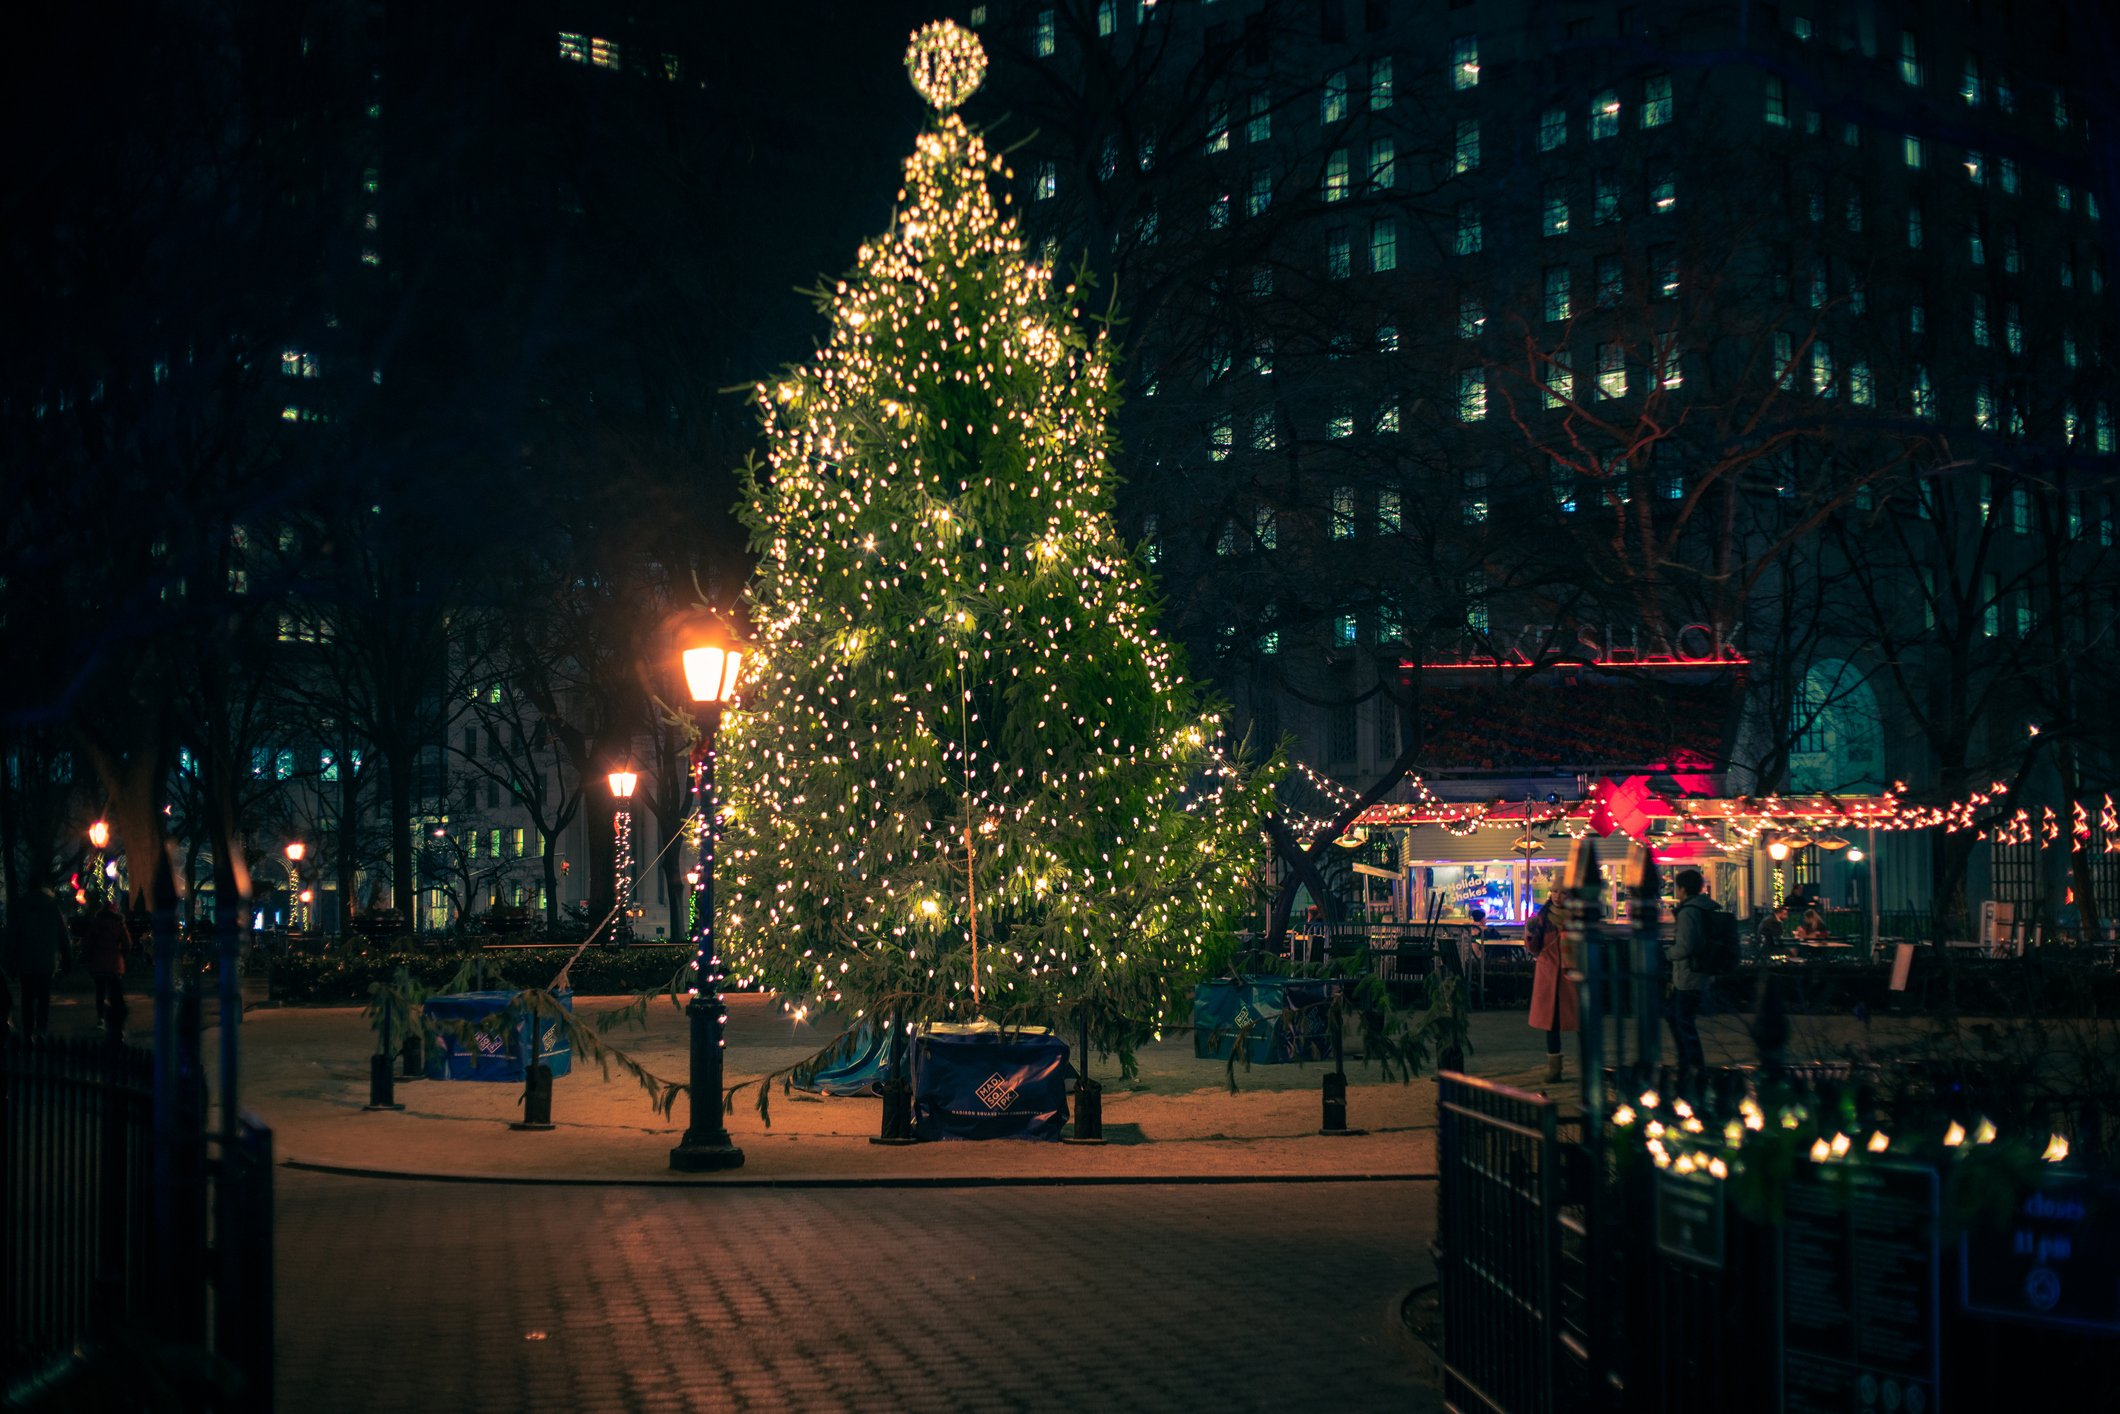 A Christmas tree with lights on display in Manhattan's Madison Square Park at night. | Photo: Getty Images